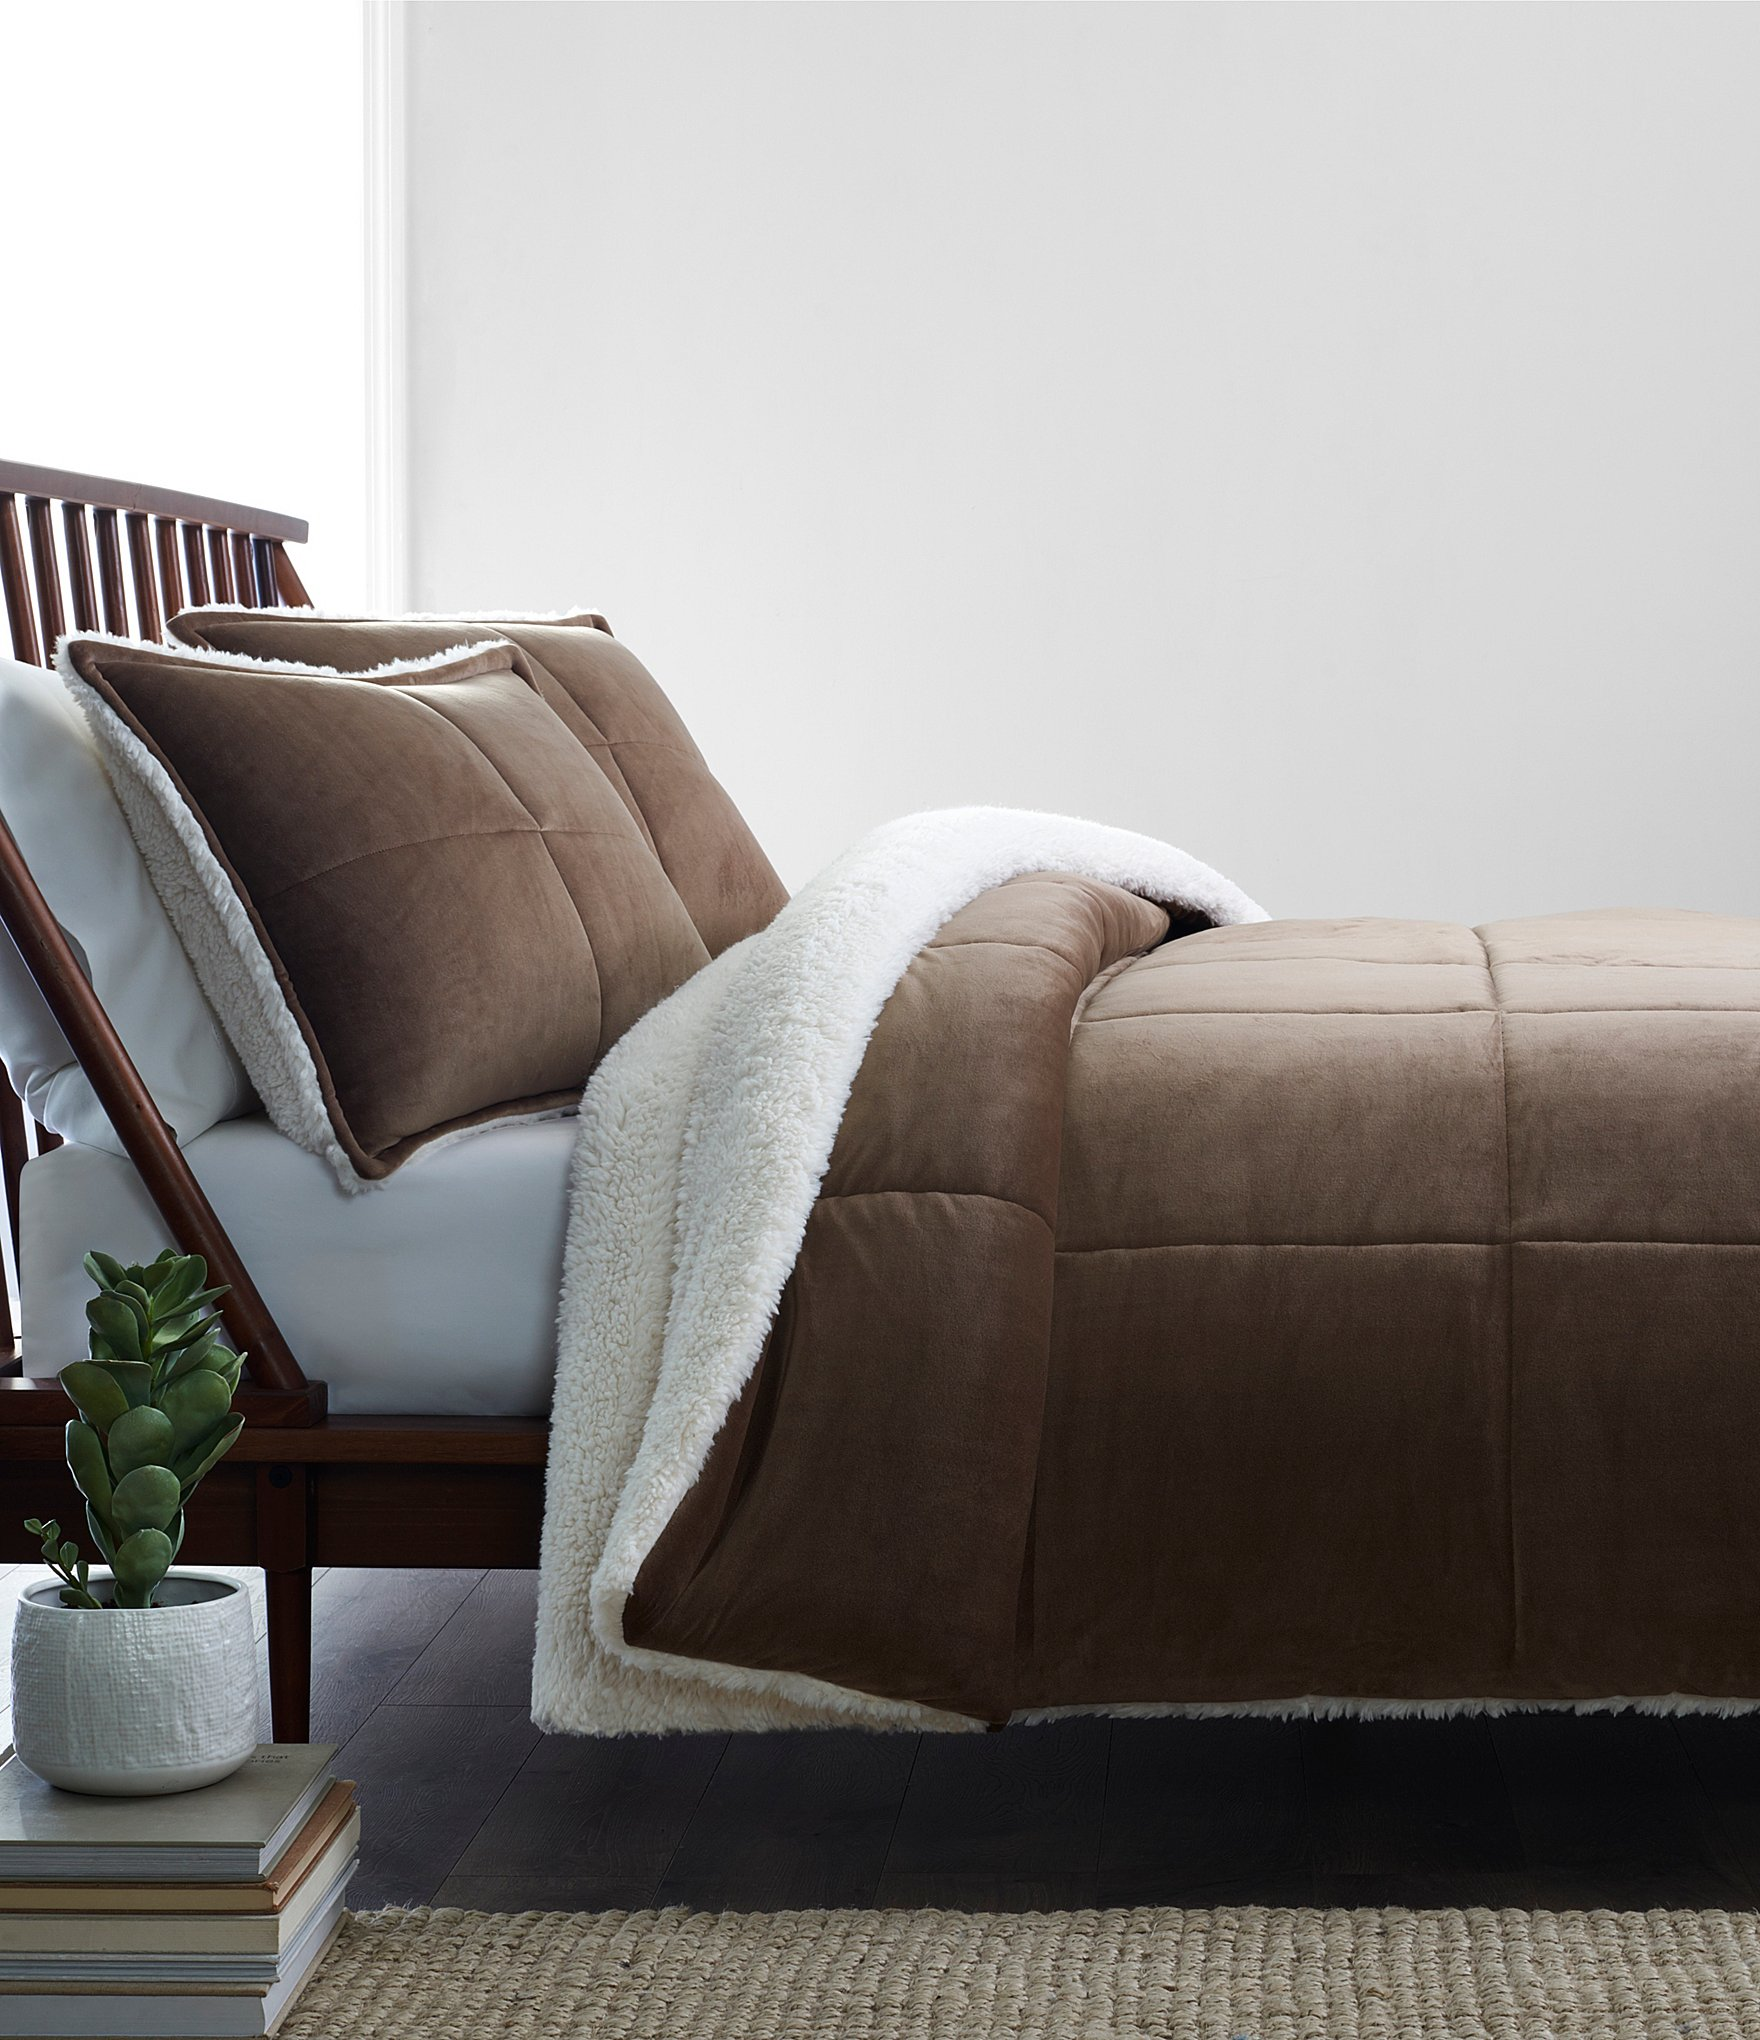 Ugg Home Decor Bedding